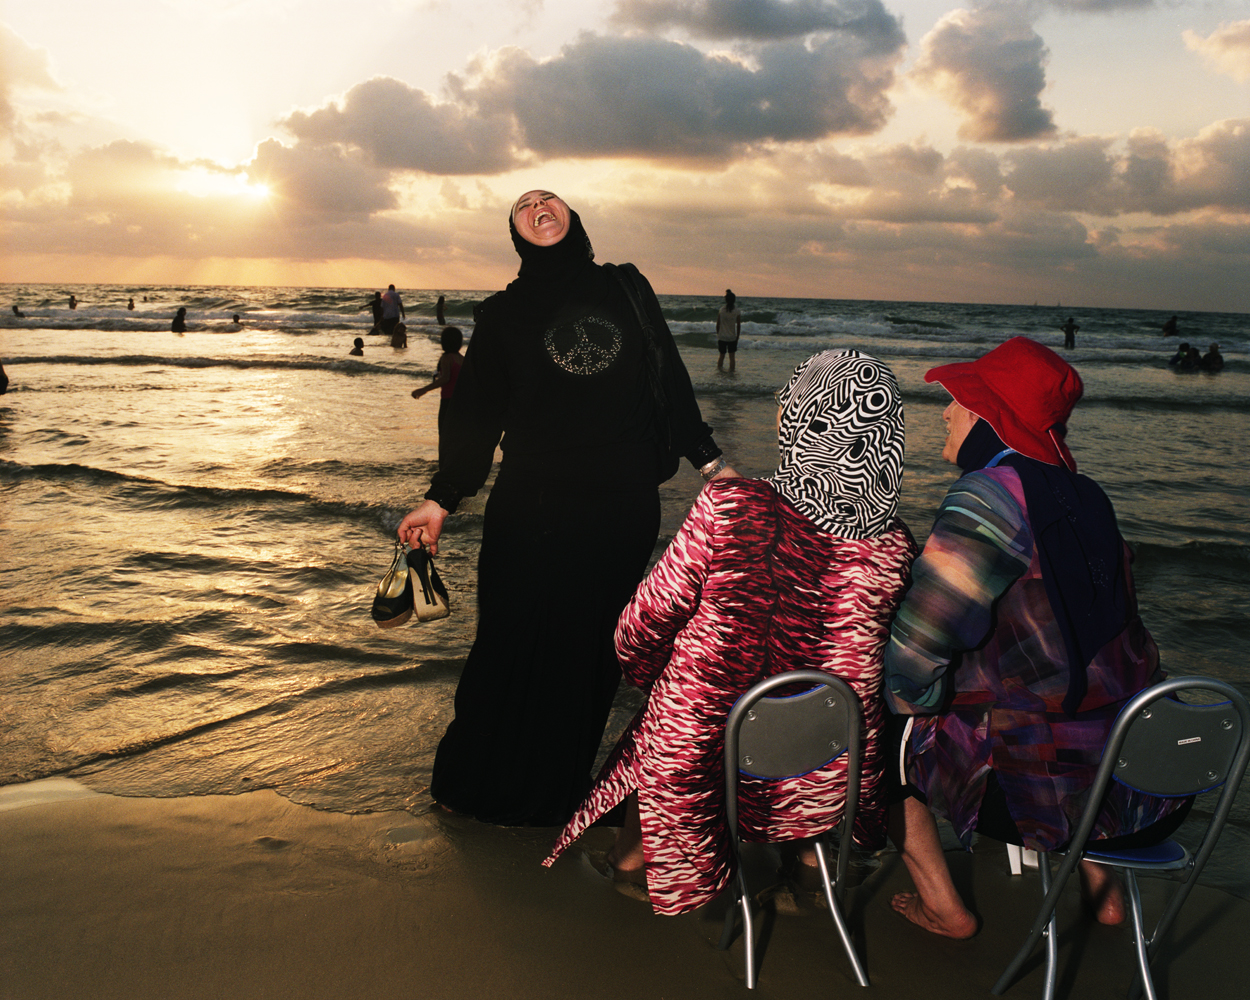 Women watch the sunset while standing at the southernmost edge of the beach near Jaffa.